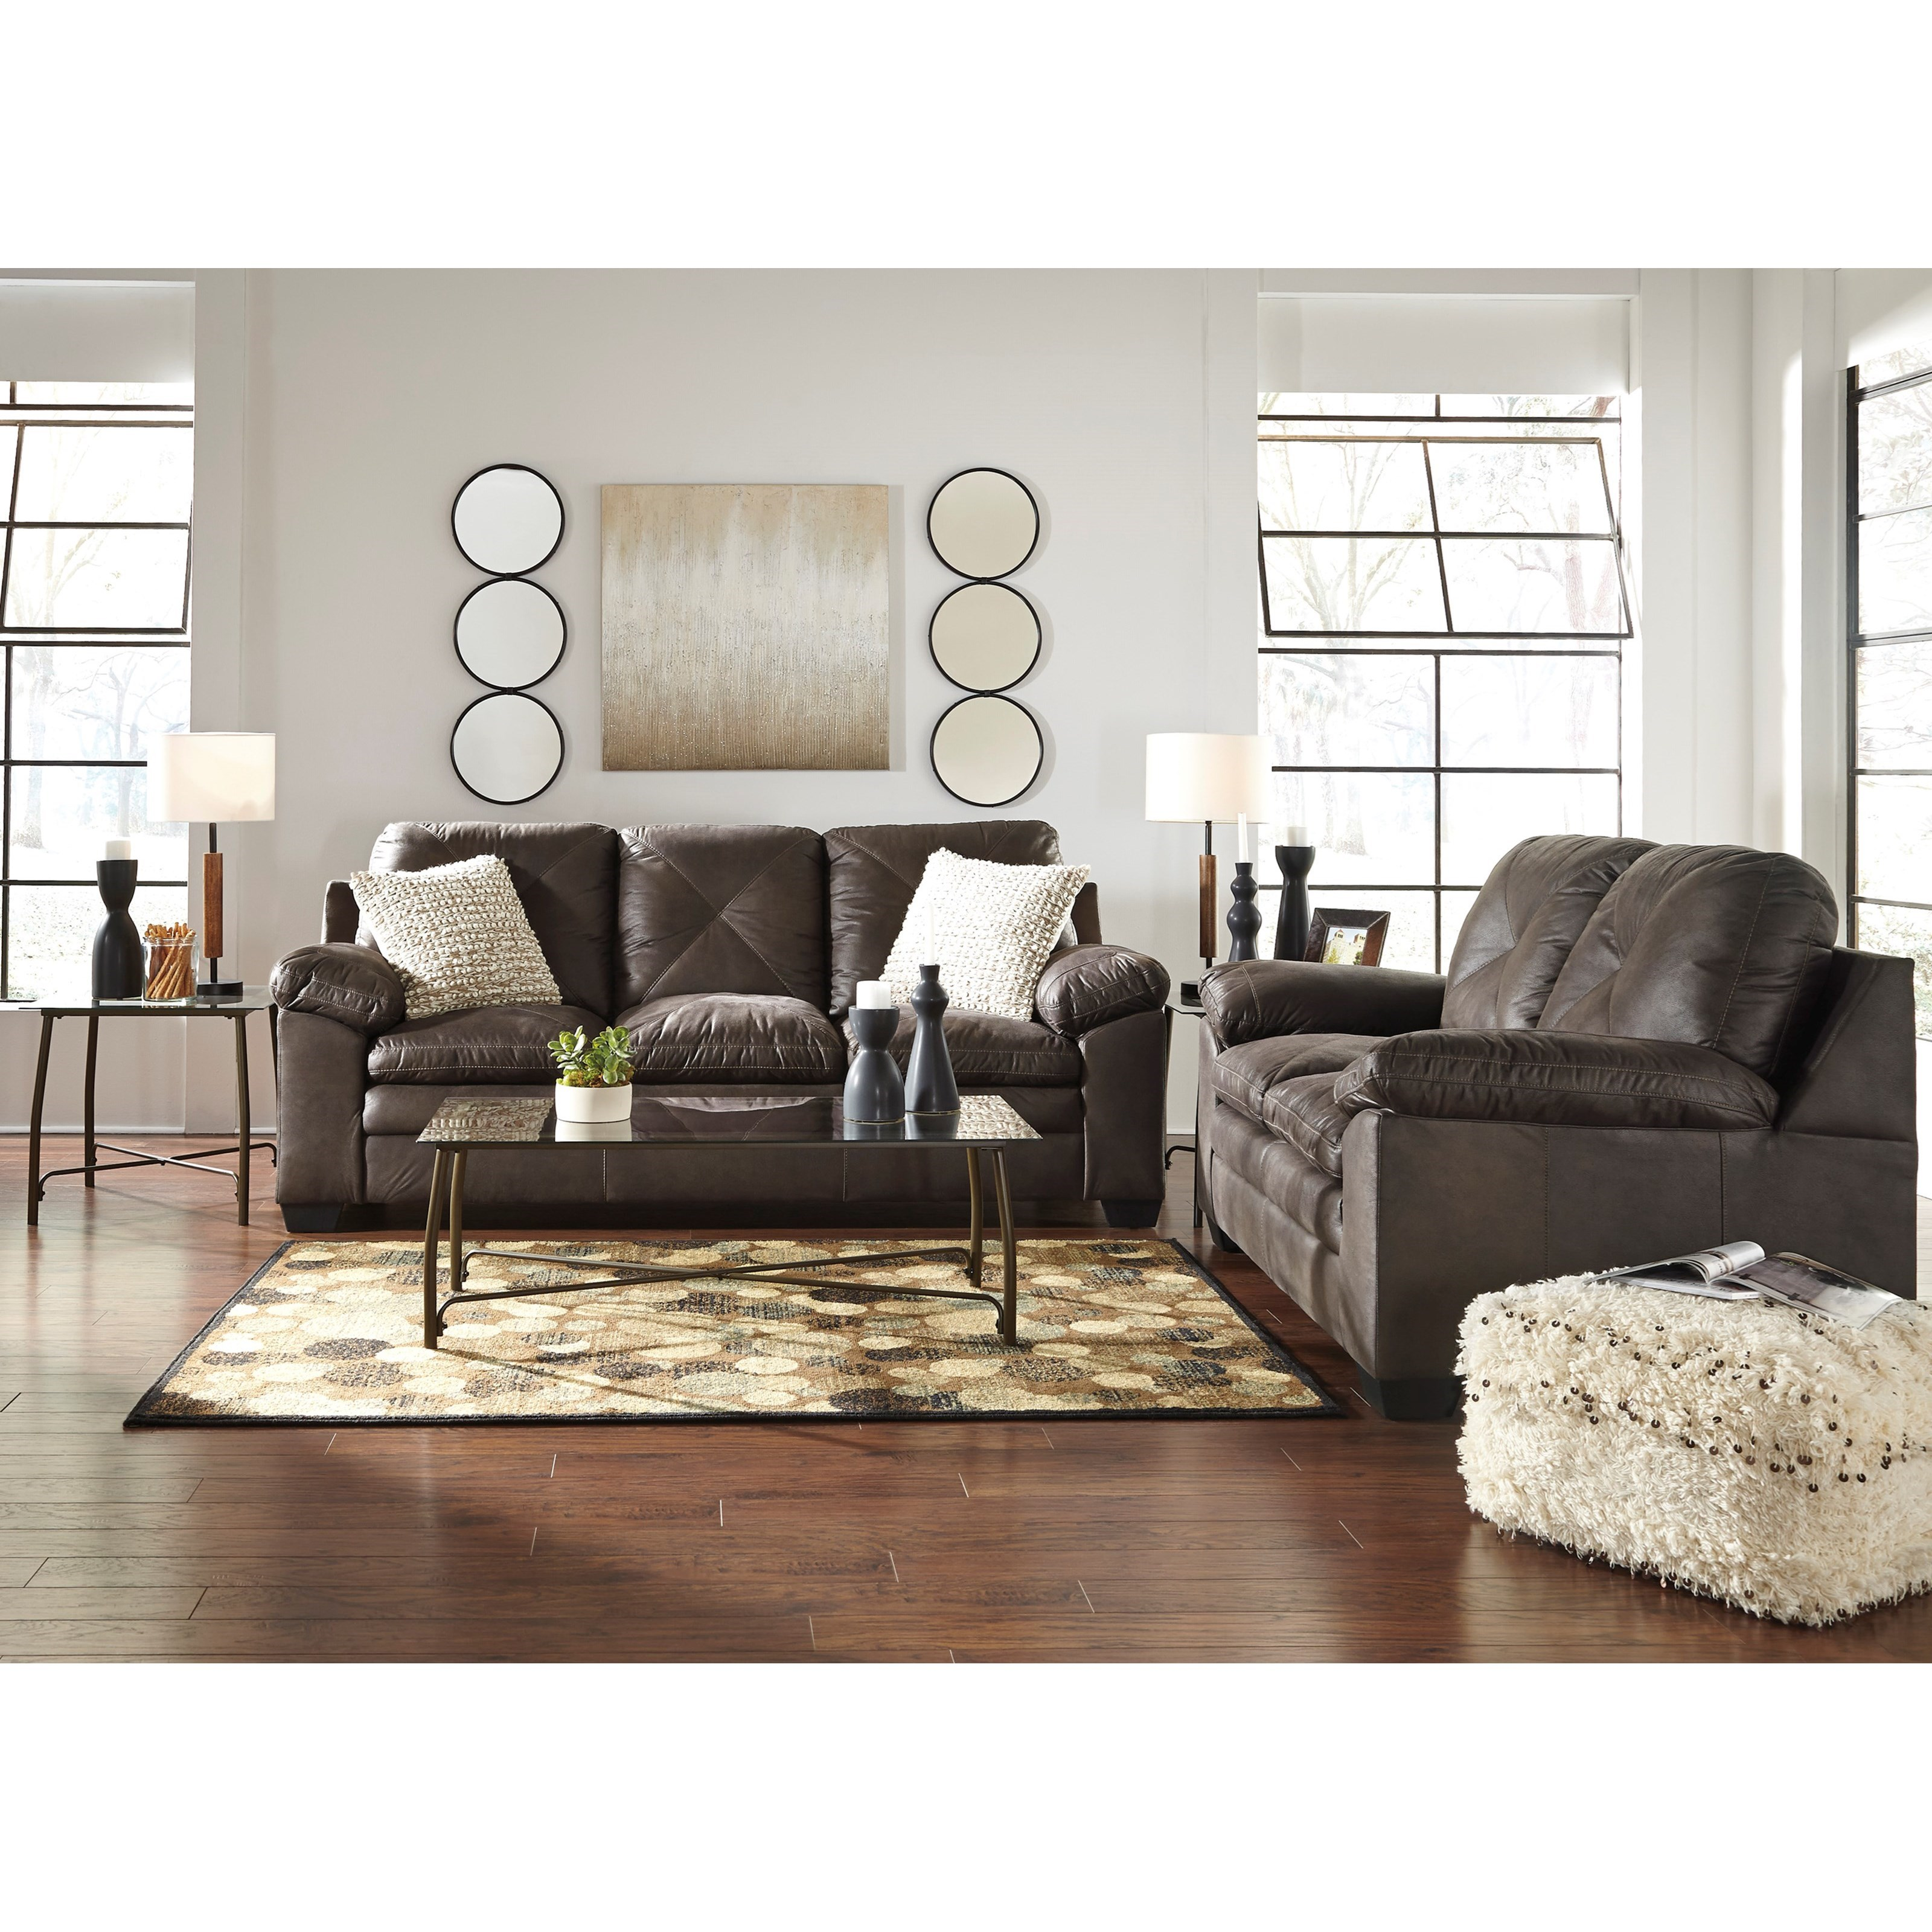 Ashley Furniture Calion Stationary Living Room Group: Signature Design By Ashley Speyer Stationary Living Room